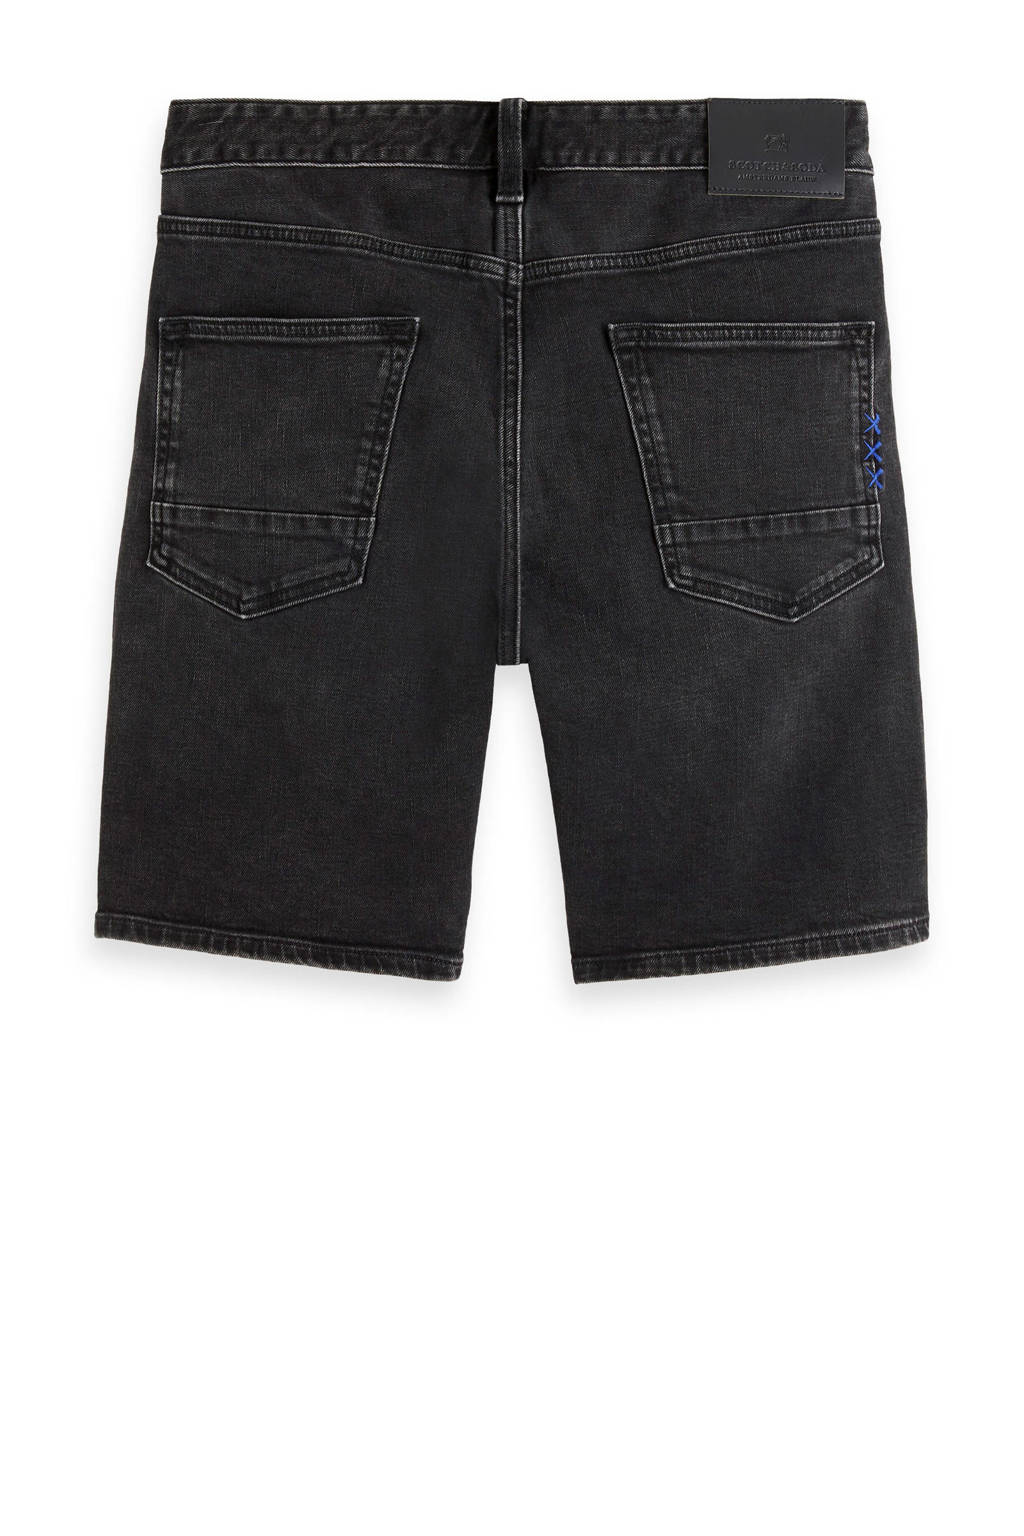 Scotch & Soda Amsterdams Blauw slim fit jeans short Ralston black out, Black Out